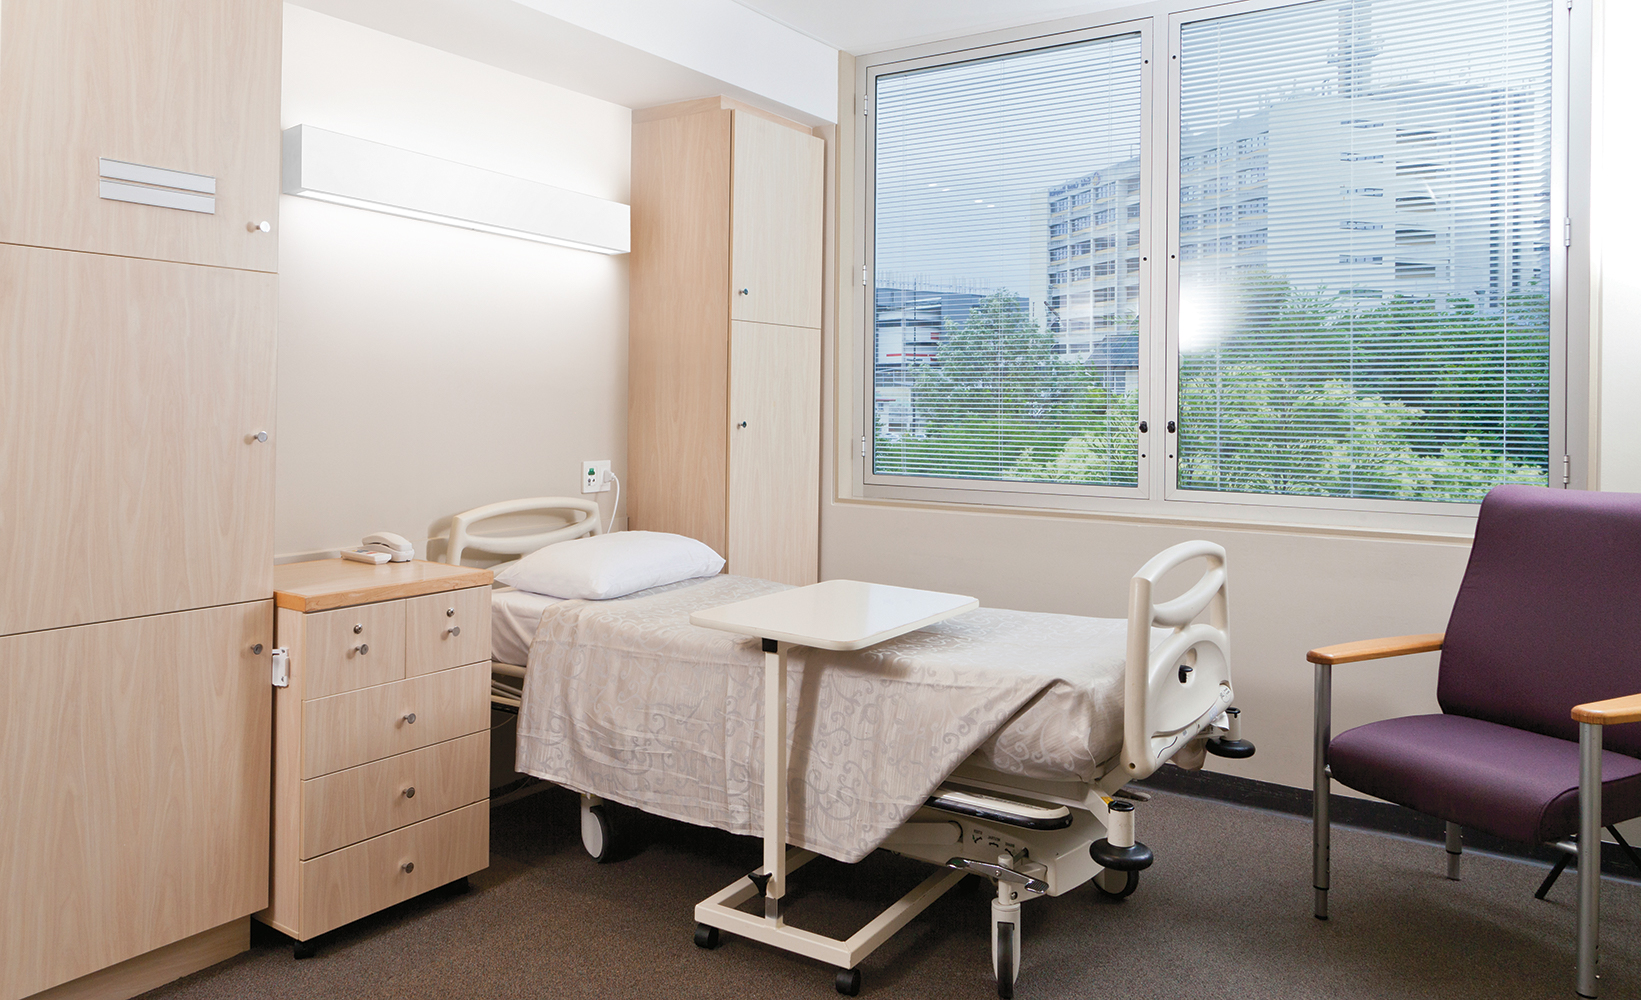 Linear Art Sconce as patient room lighting, mounted horizontally above the patient bed overlooking a large window.